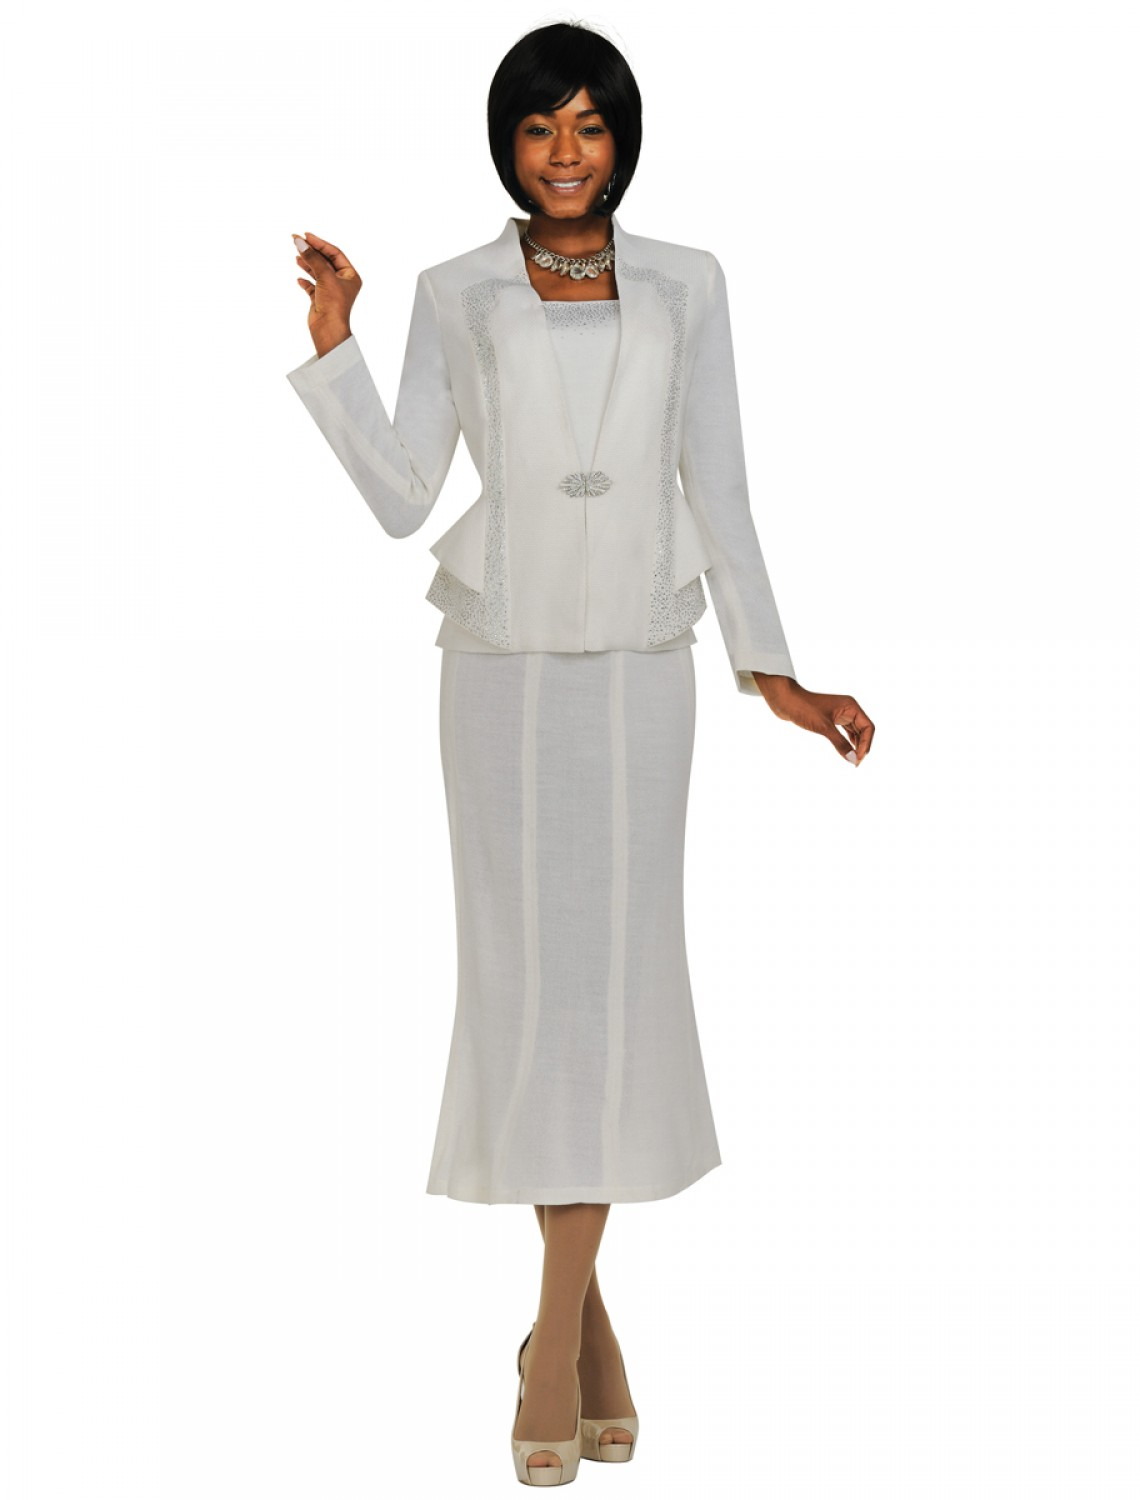 White dress for church - Featured Image Style Tdc94363